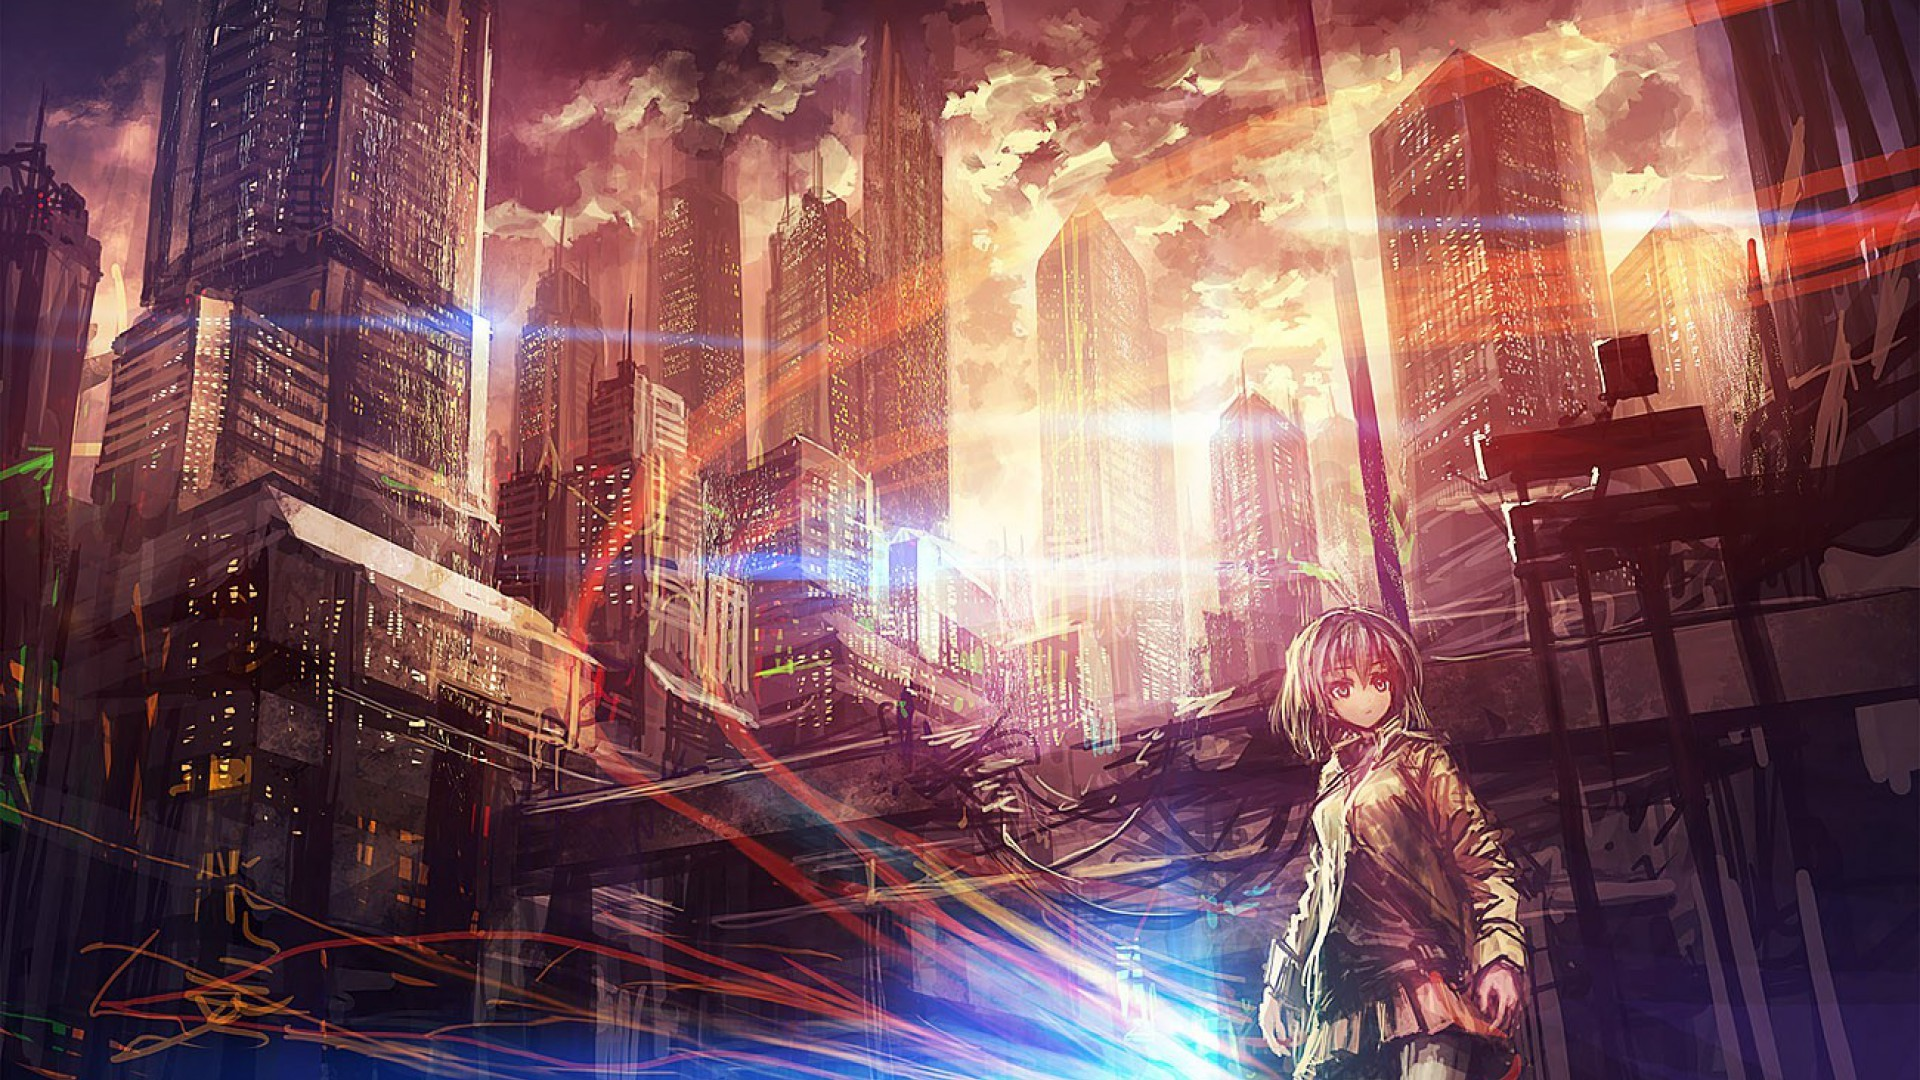 Anime City Scenery Wallpapers Background with High Definition Wallpaper  px 594.82 KB